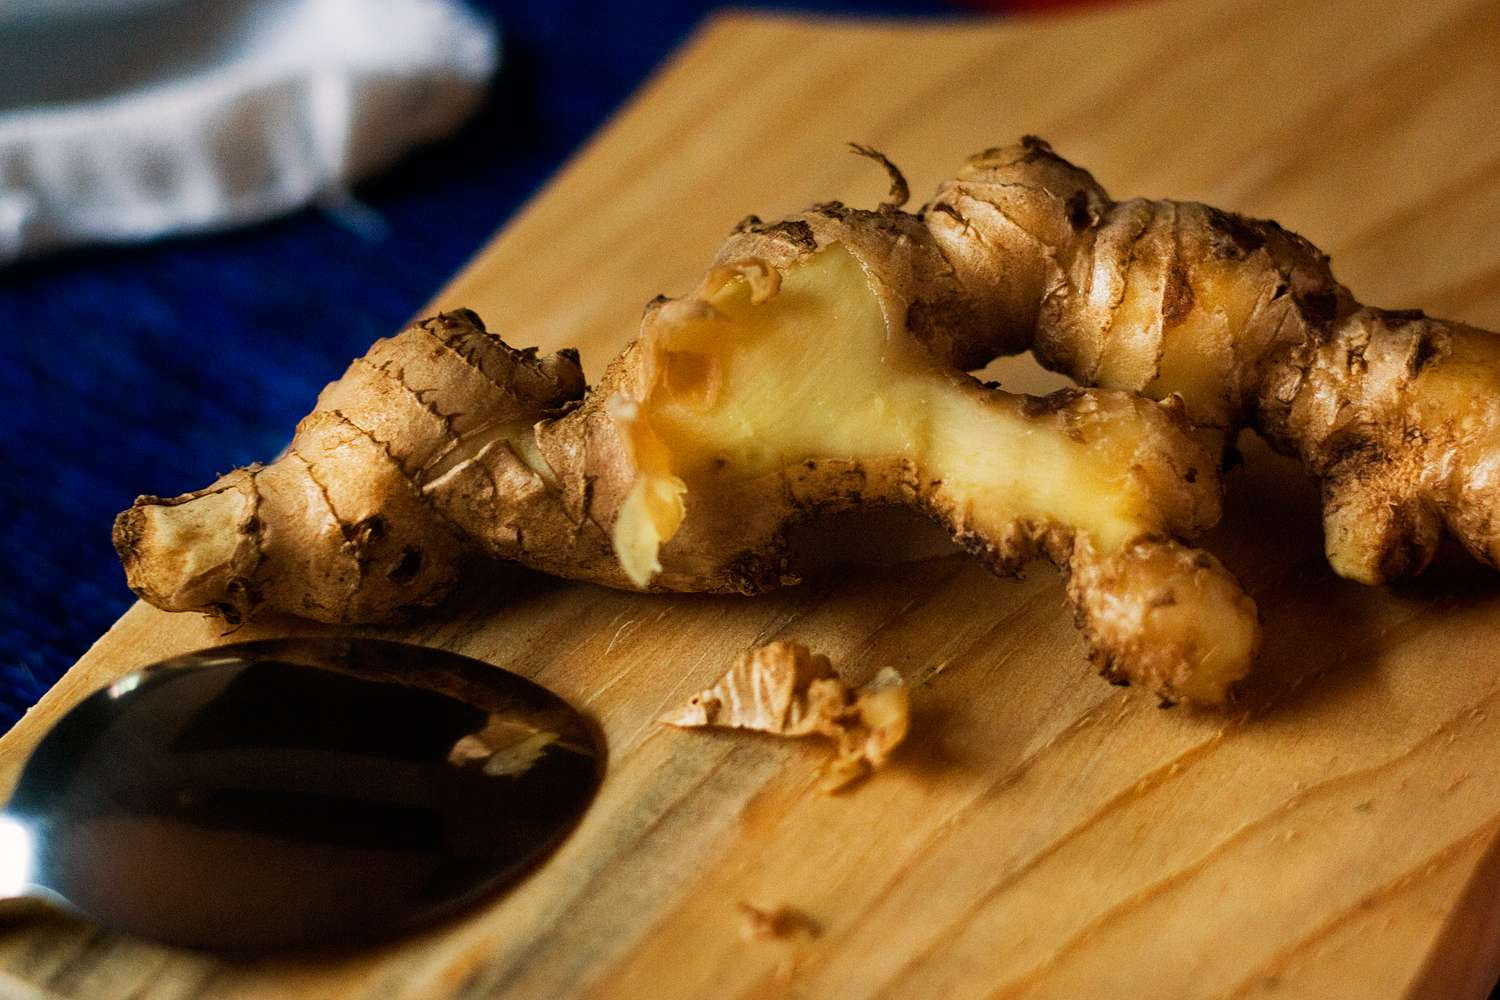 Peeled ginger